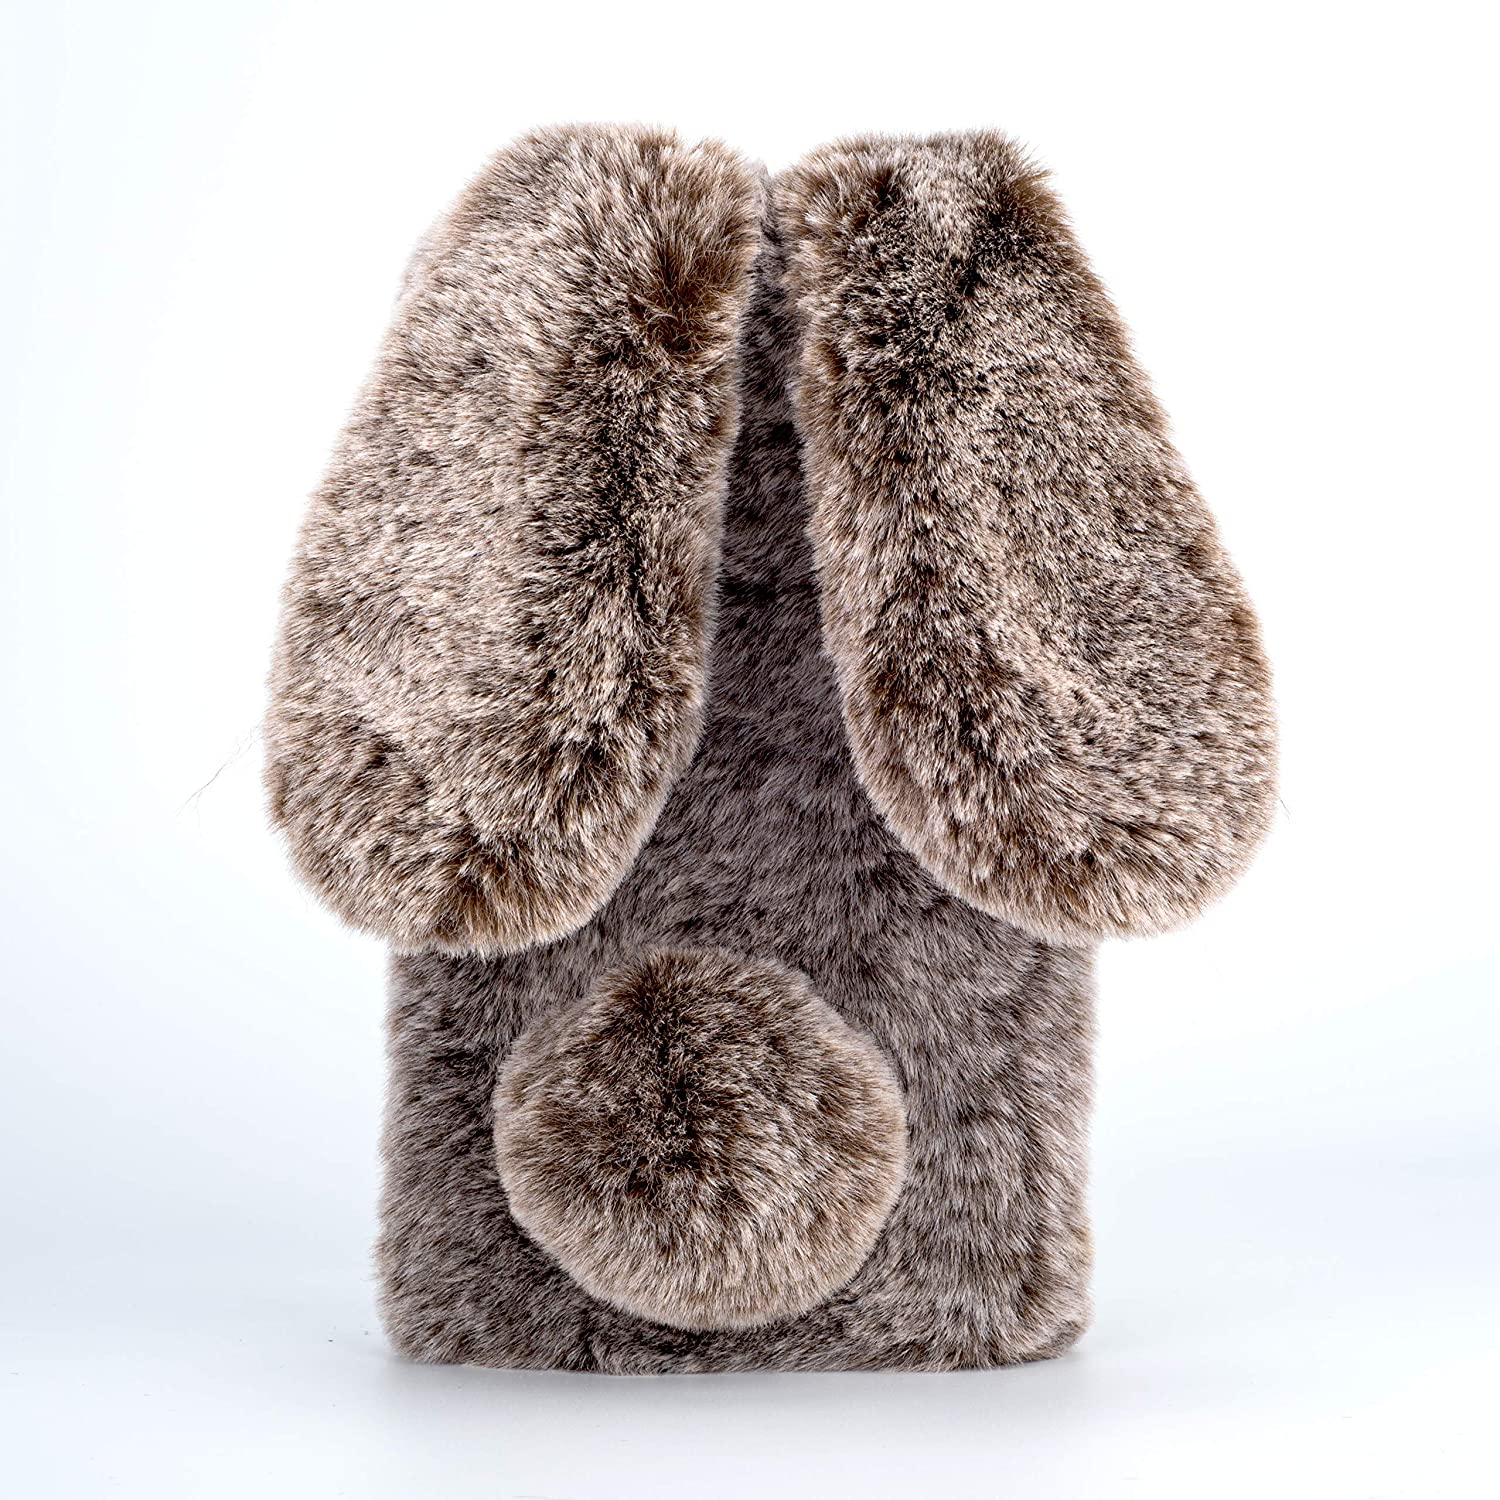 Amocase for iPhone 6S Plus Faux Furry Case with 2 in 1 Stylus,Luxury Bling Diamond 3D Bowknot Cute Warm Black Bunny Rabbit Fuzzy Fluffy Plush Soft Fur Silicone Case for iPhone 6 Plus//6S Plus 5.5